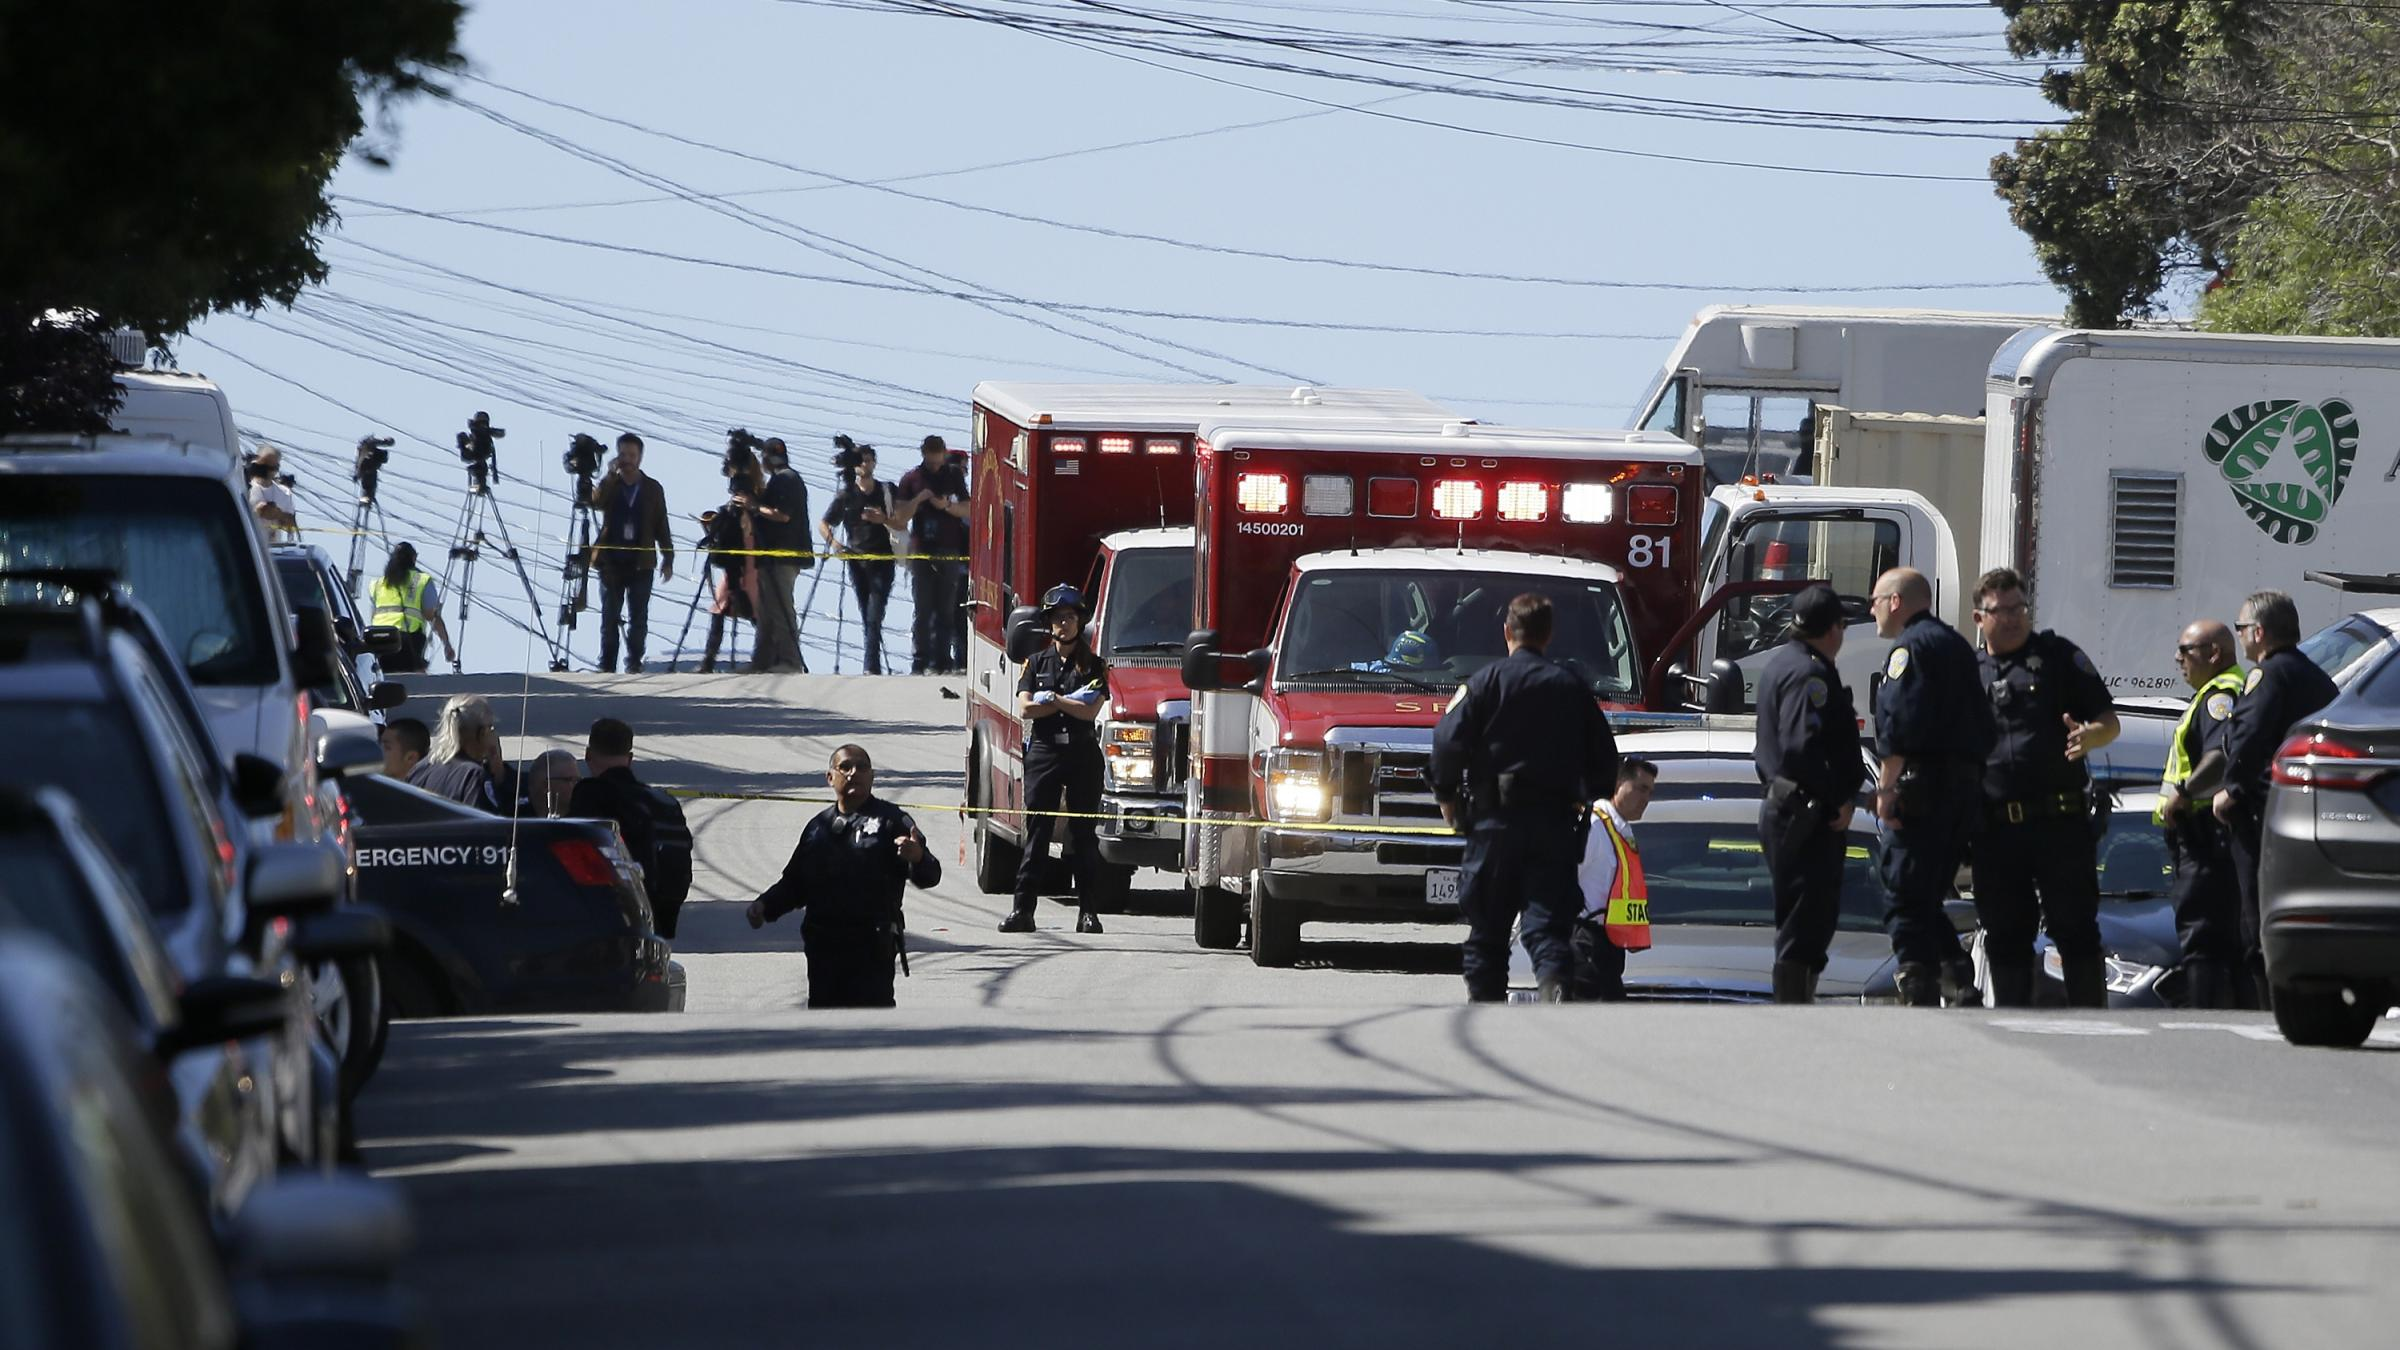 San Francisco UPS shooting leaves 4 dead, including gunman